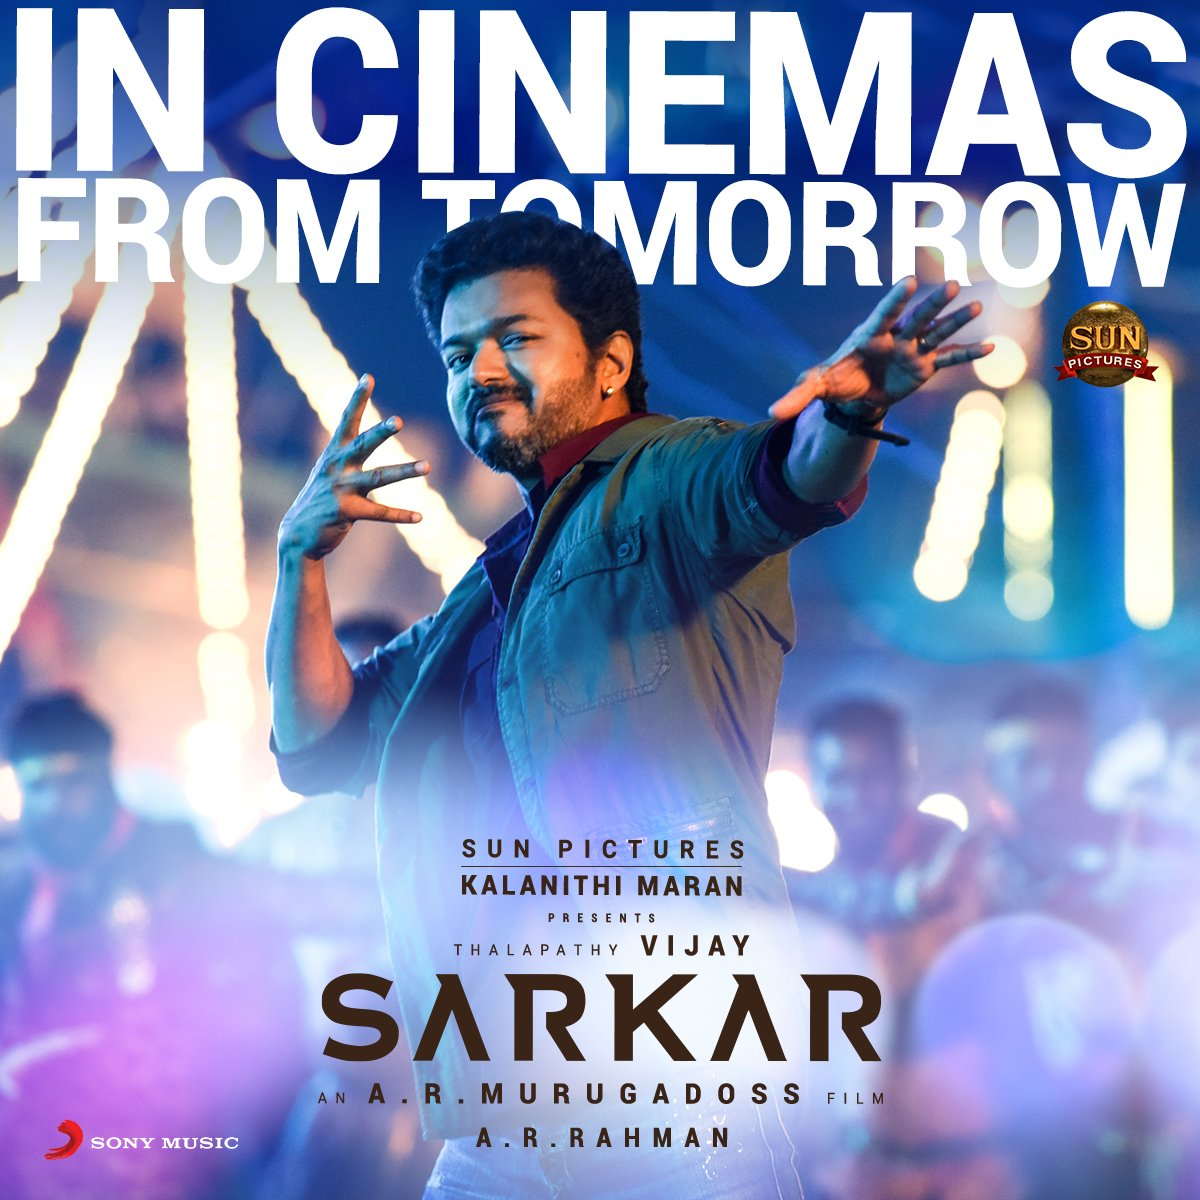 #SARKAR Review - FIRST REPORT - A R Murugadoss gave FLOP with Mahesh Babu earlier, now even better FLOP with Vijay